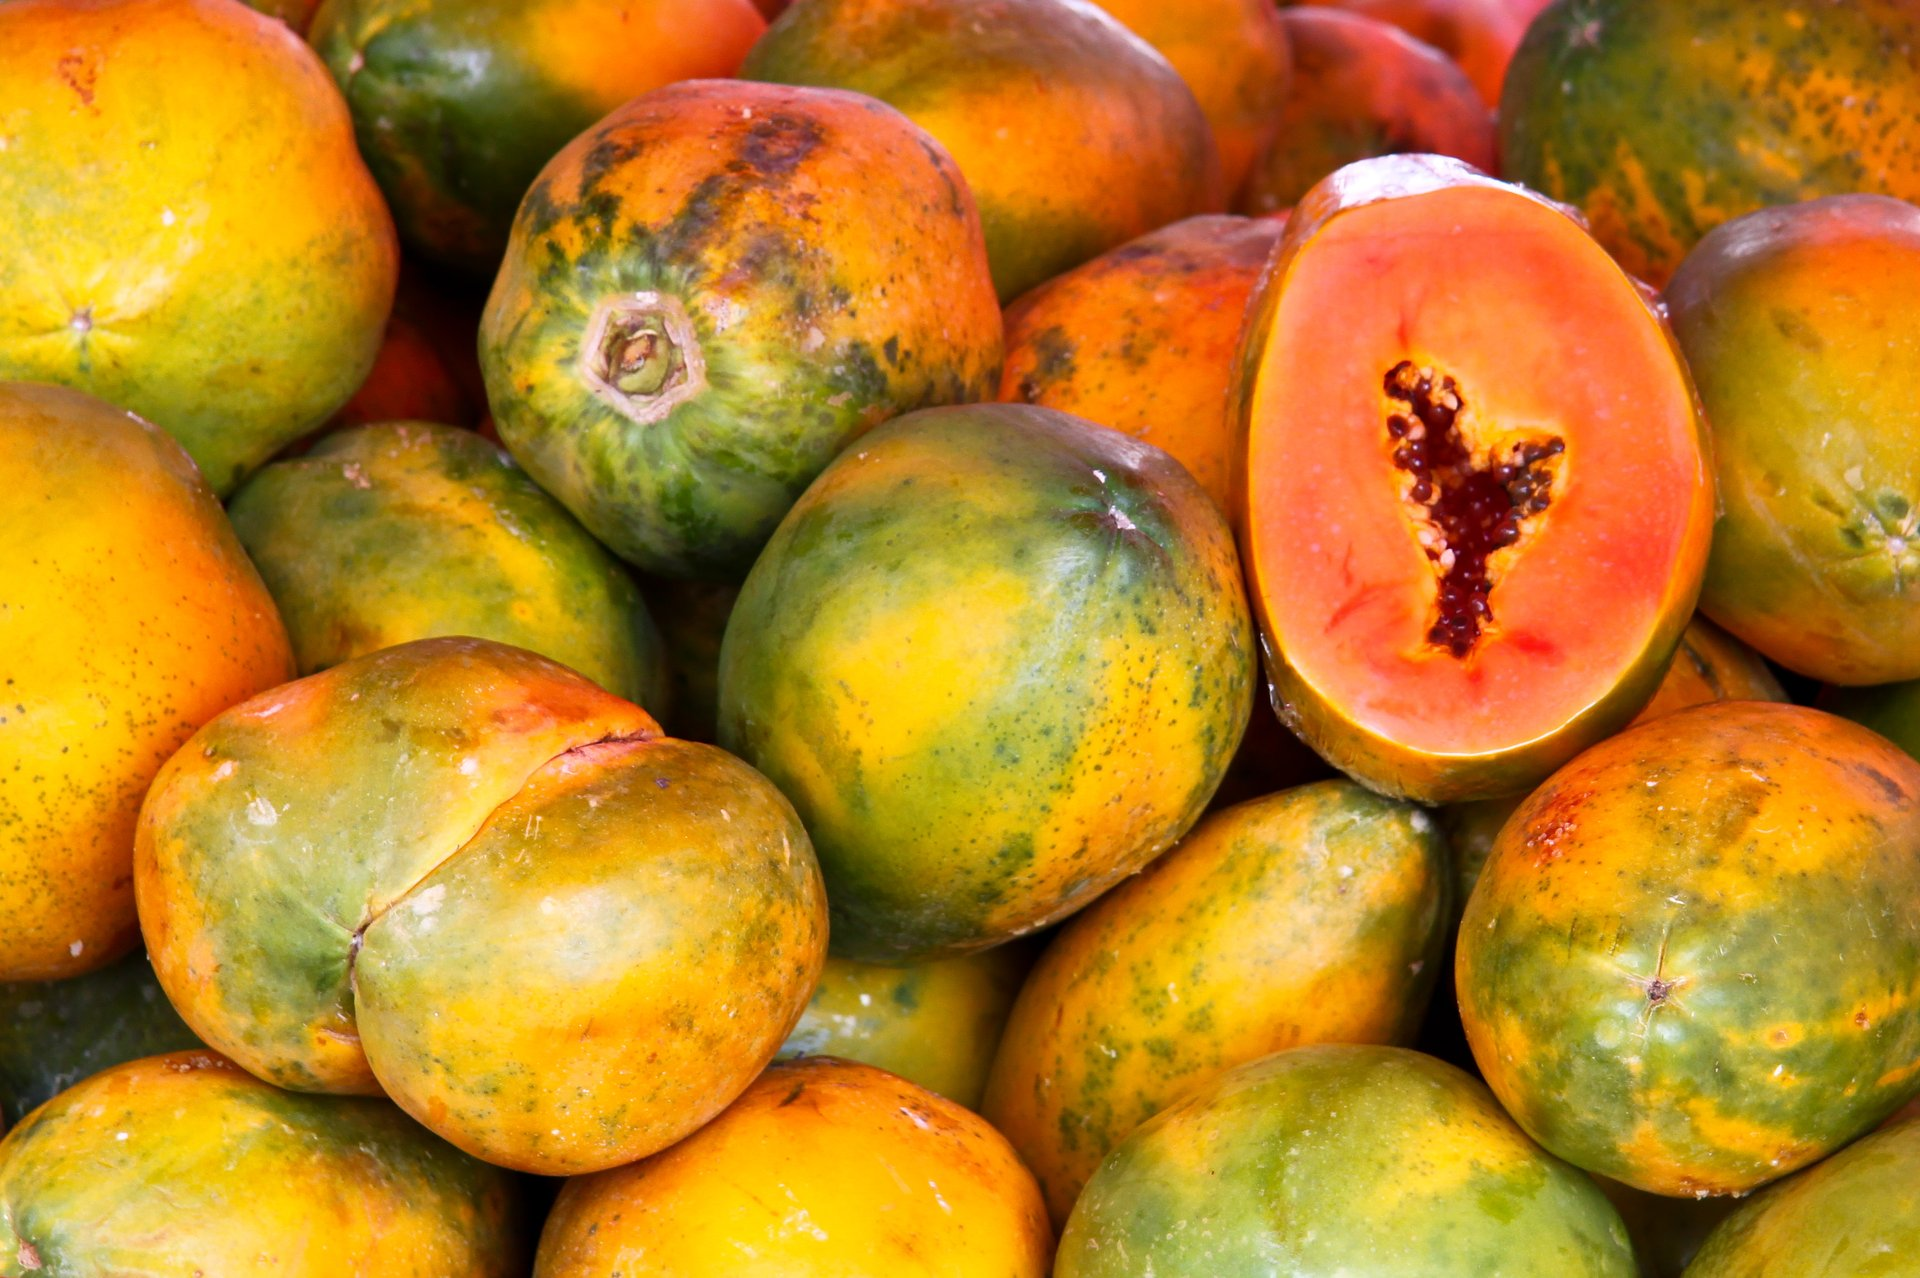 Papaya in Costa Rica - Best Season 2019